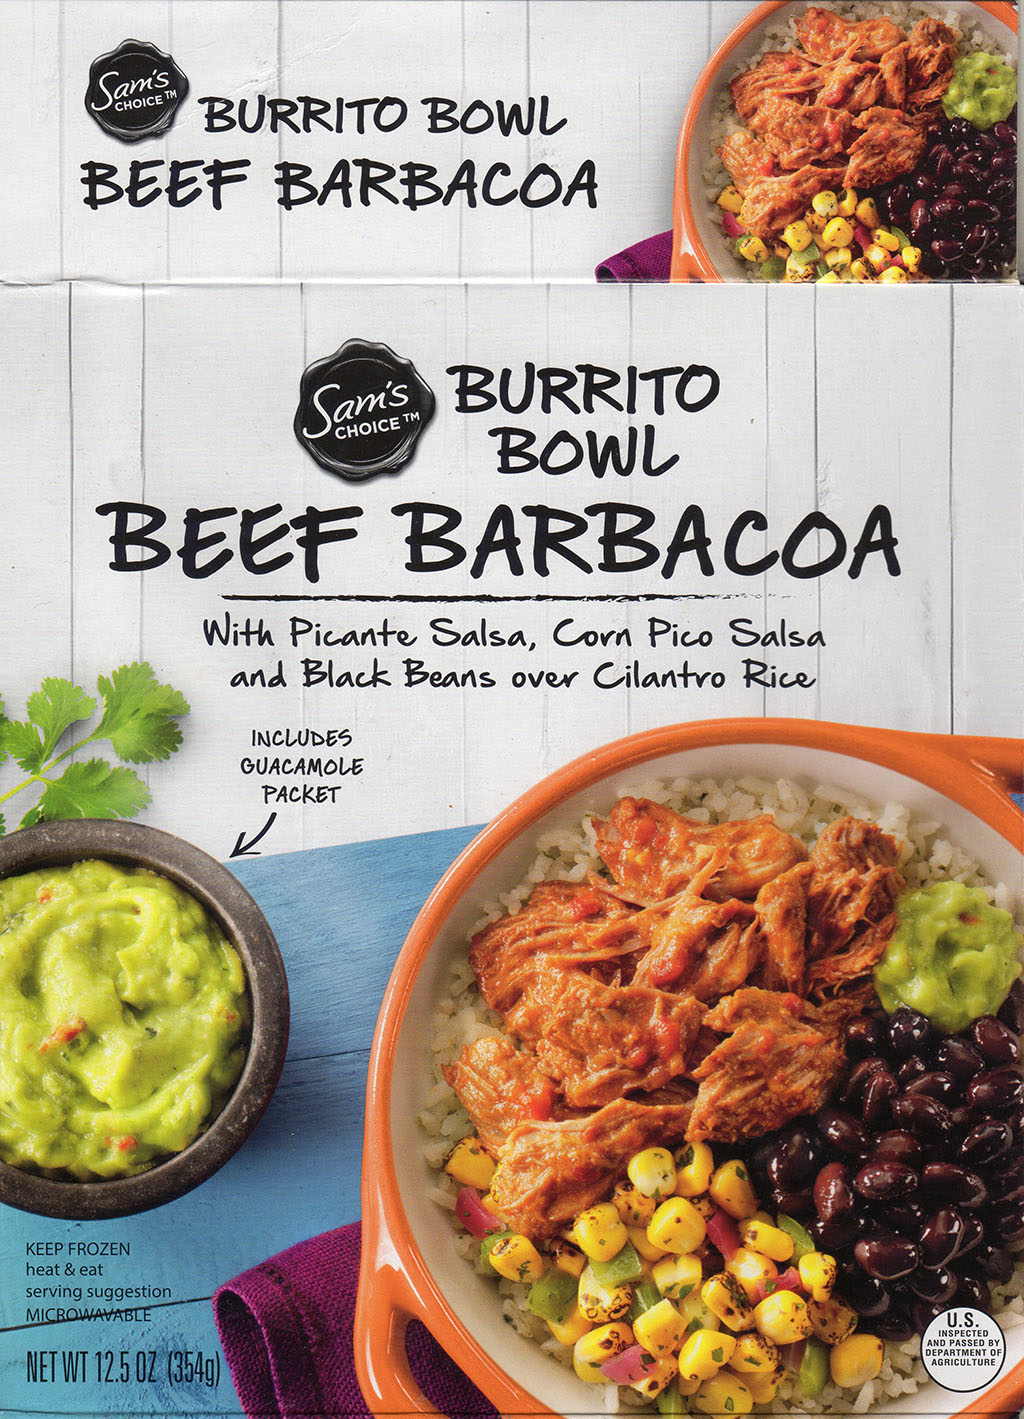 Sam's Choice Beef Barbacoa Burrito Bowl package front